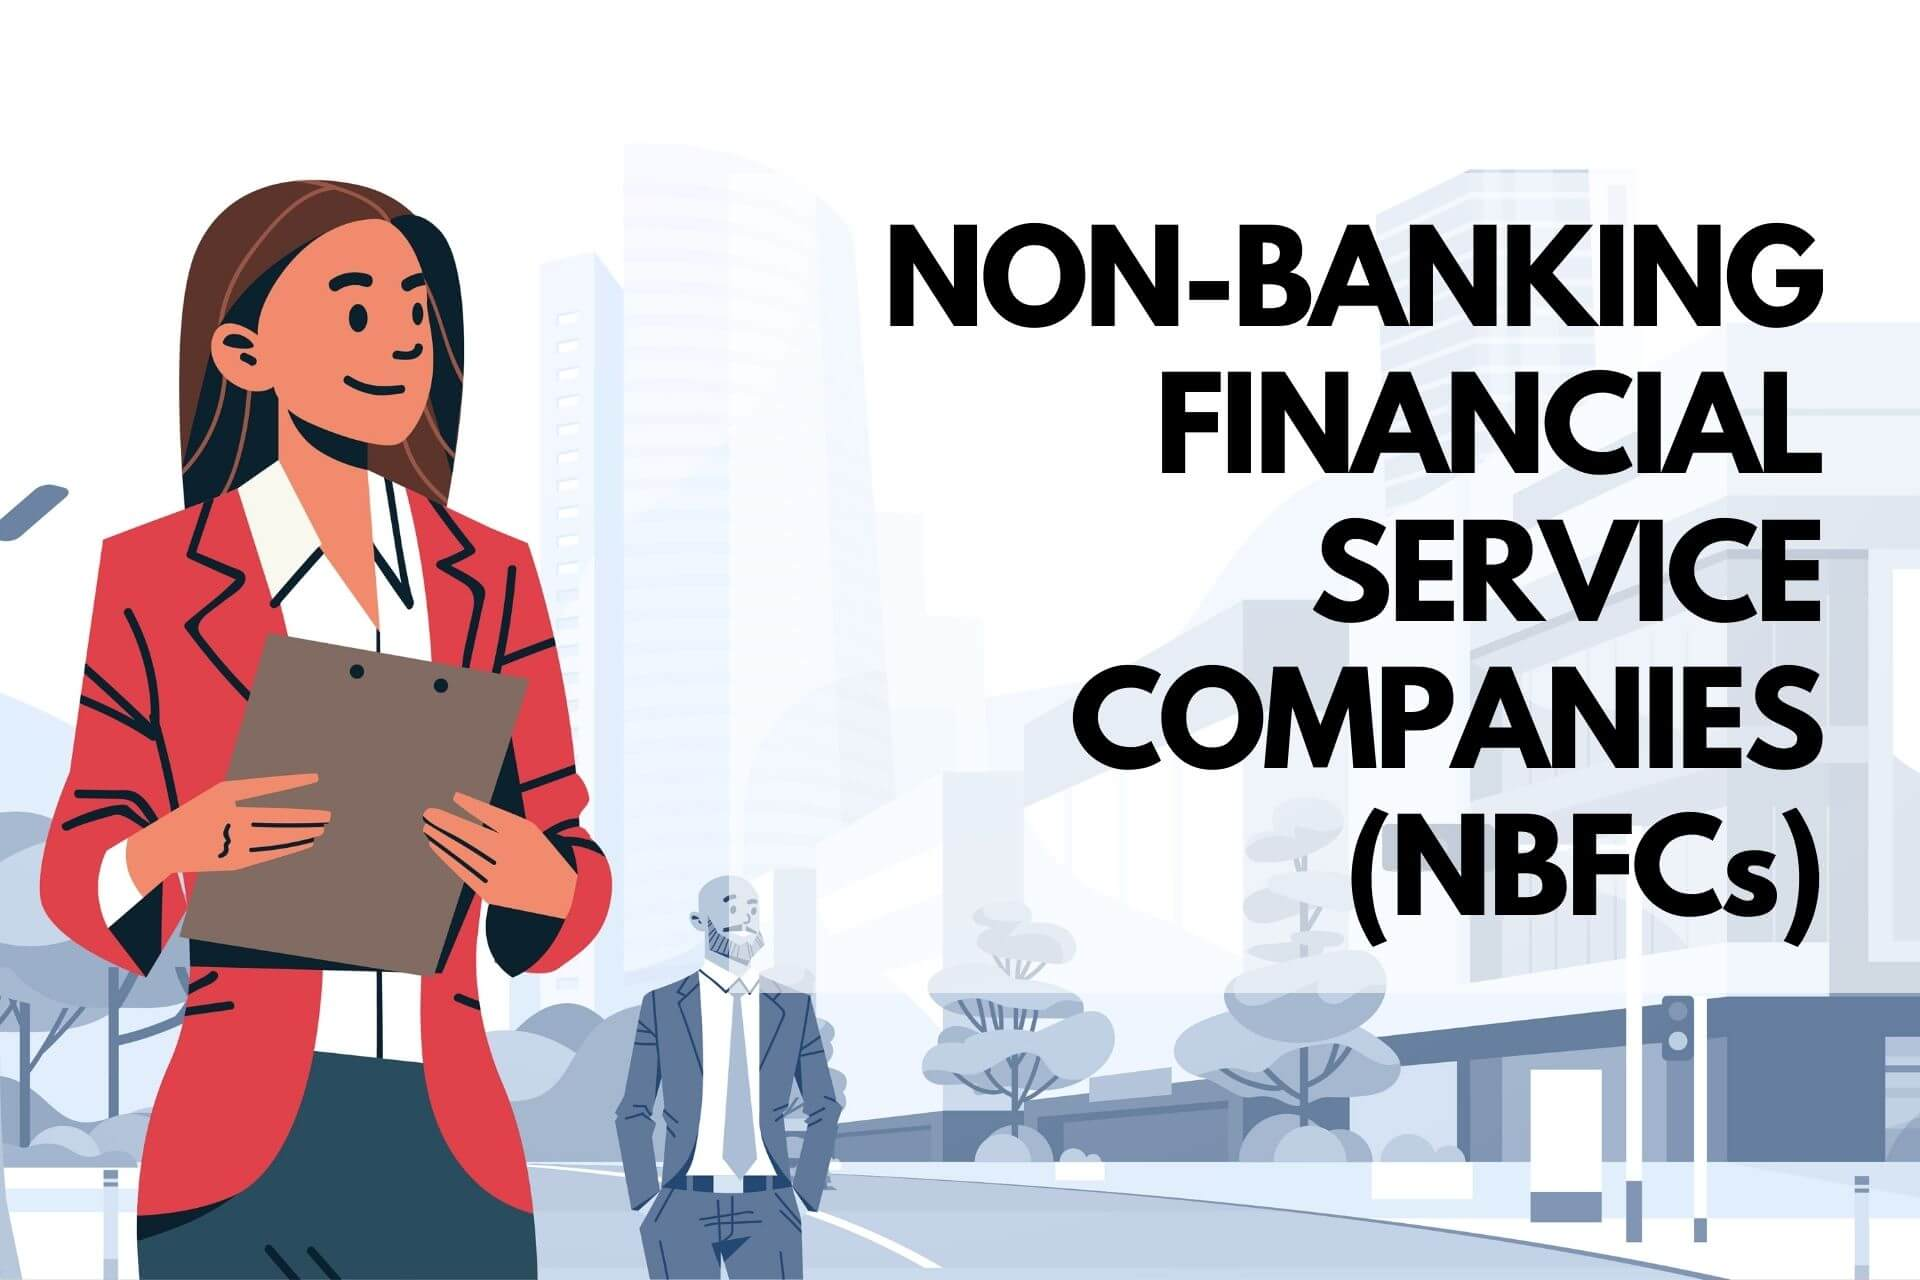 Non-Banking Financial Companies (NBFCs) - What are they cover